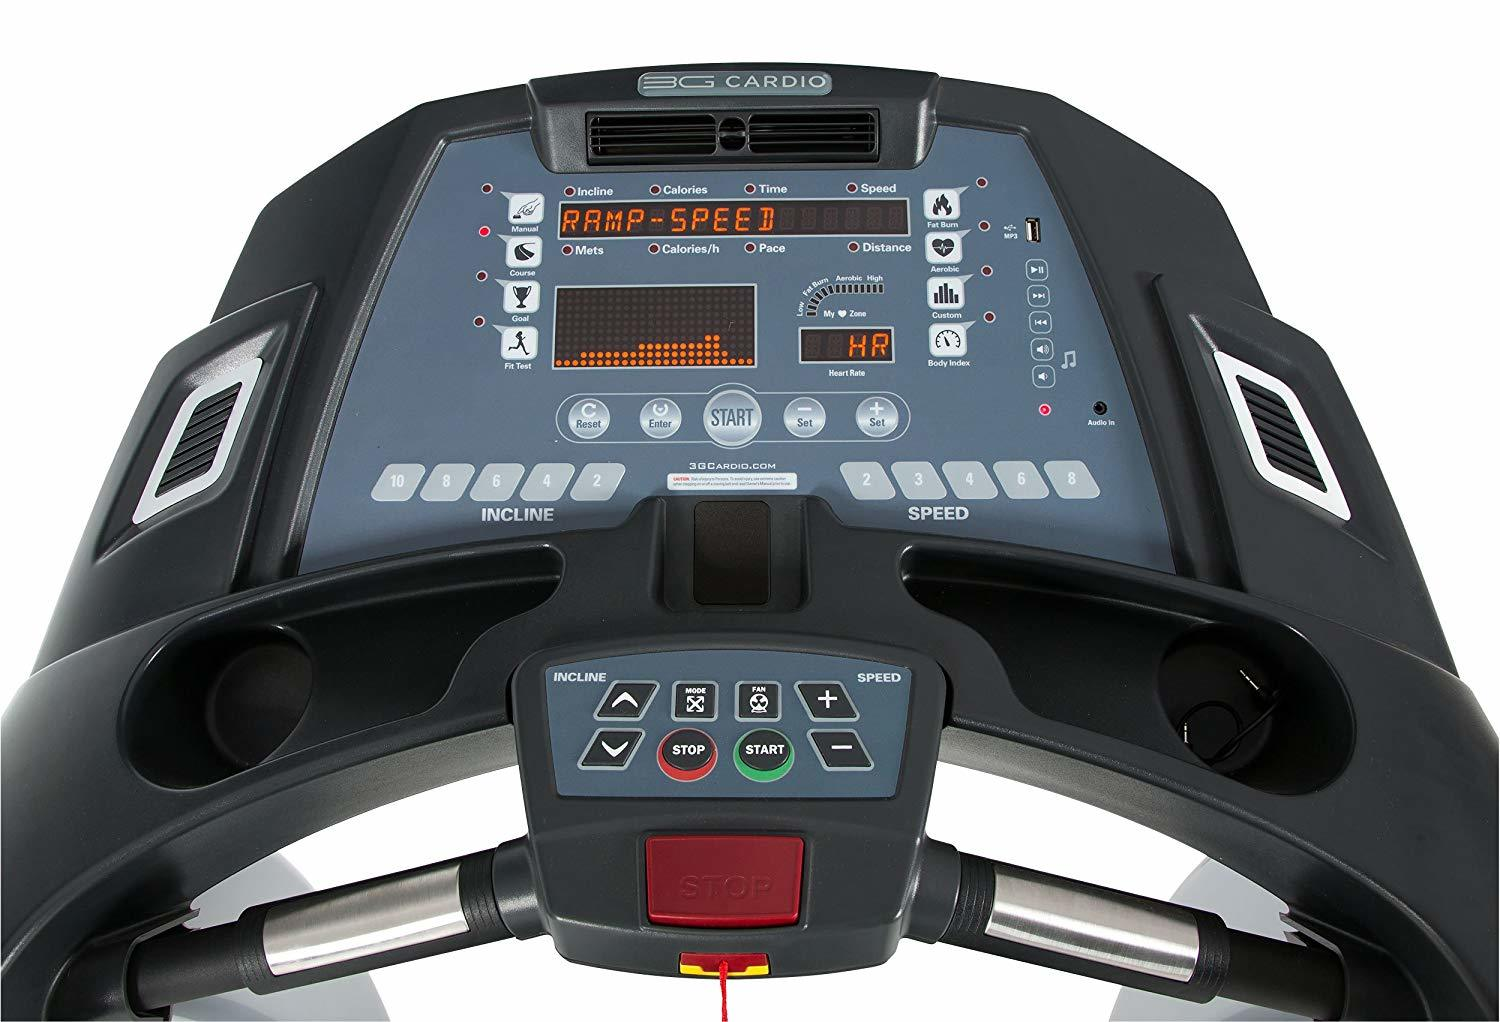 6 BEST commercial treadmills hands DOWN! 2